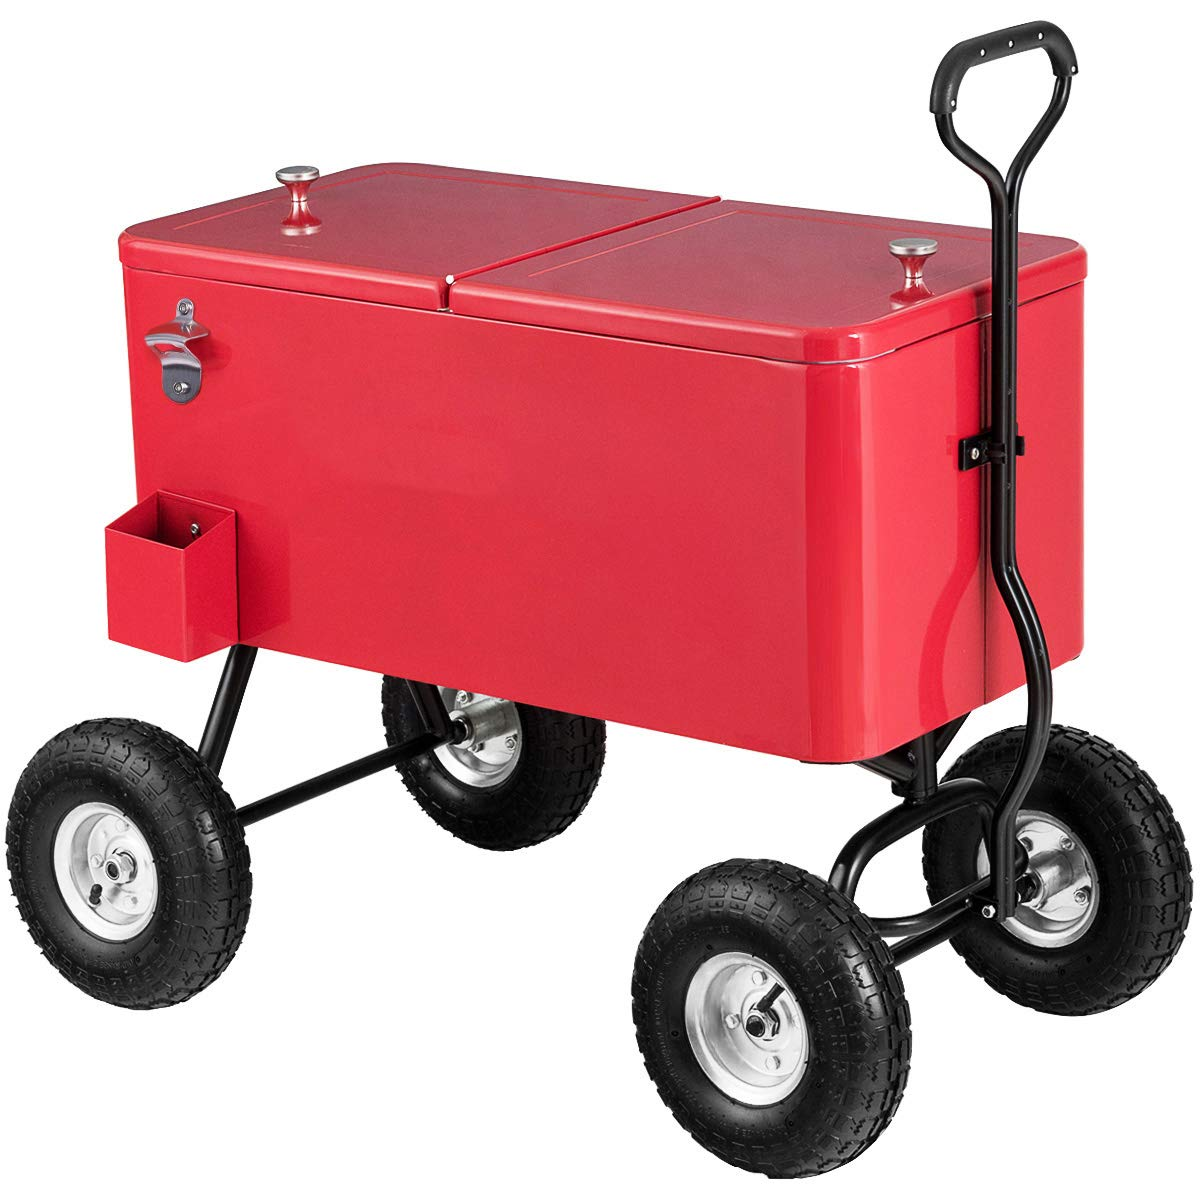 Giantex 80QT Wagon Cooler Rolling Cooler Ice, with Long Handle and 10'' All Terrain Wheels, Portable Rolling Bar Party Cold Drink Beverage Chest Patio Outdoor Cooling Cart, Red by Giantex